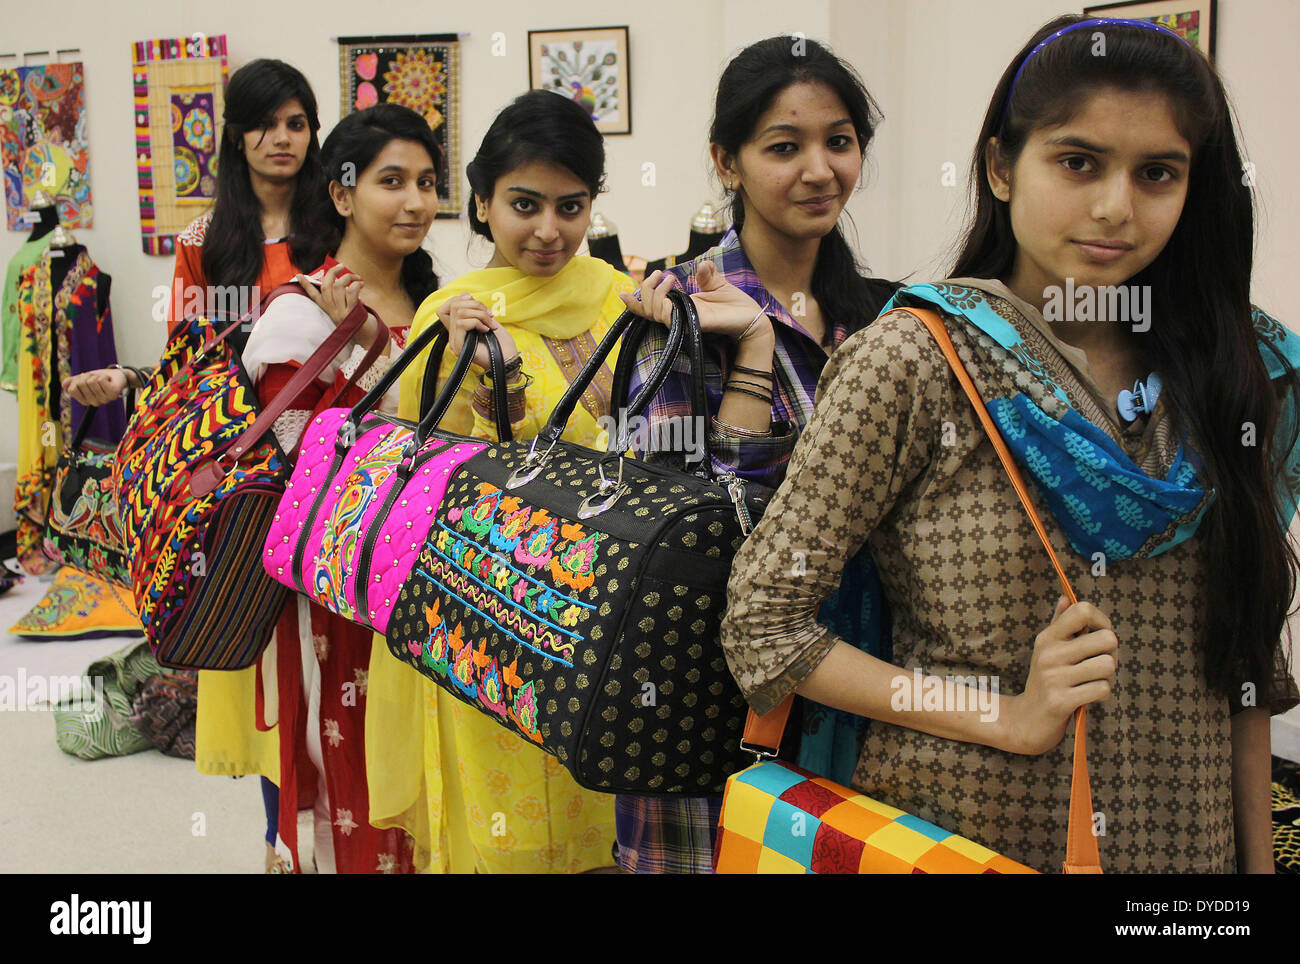 karachi single christian girls Lahore (agenzia fides) - the rape of girls belonging to religious minorities is a very common phenomenon in pakistan christian women are a prime target, because the most vulnerable and defenseless.